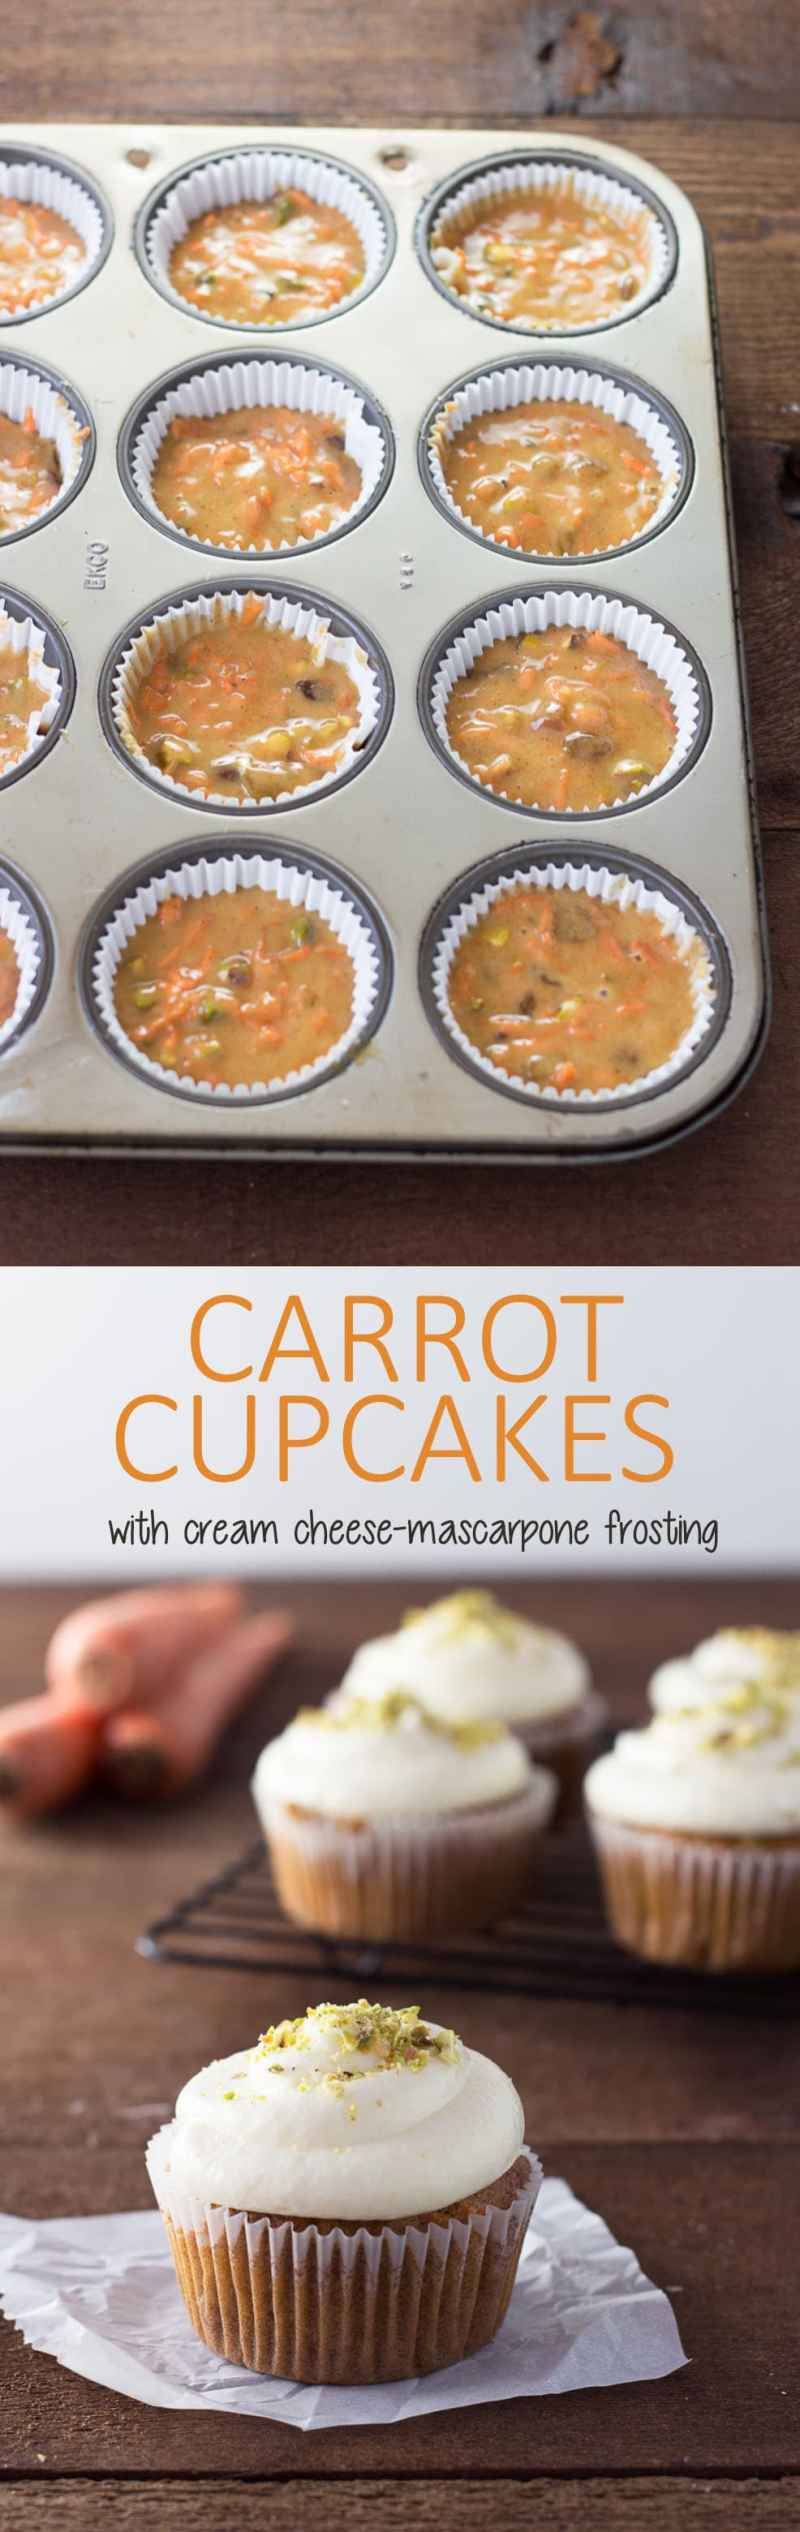 Carrot Cupcakes with Cream Cheese-Mascarpone Frosting